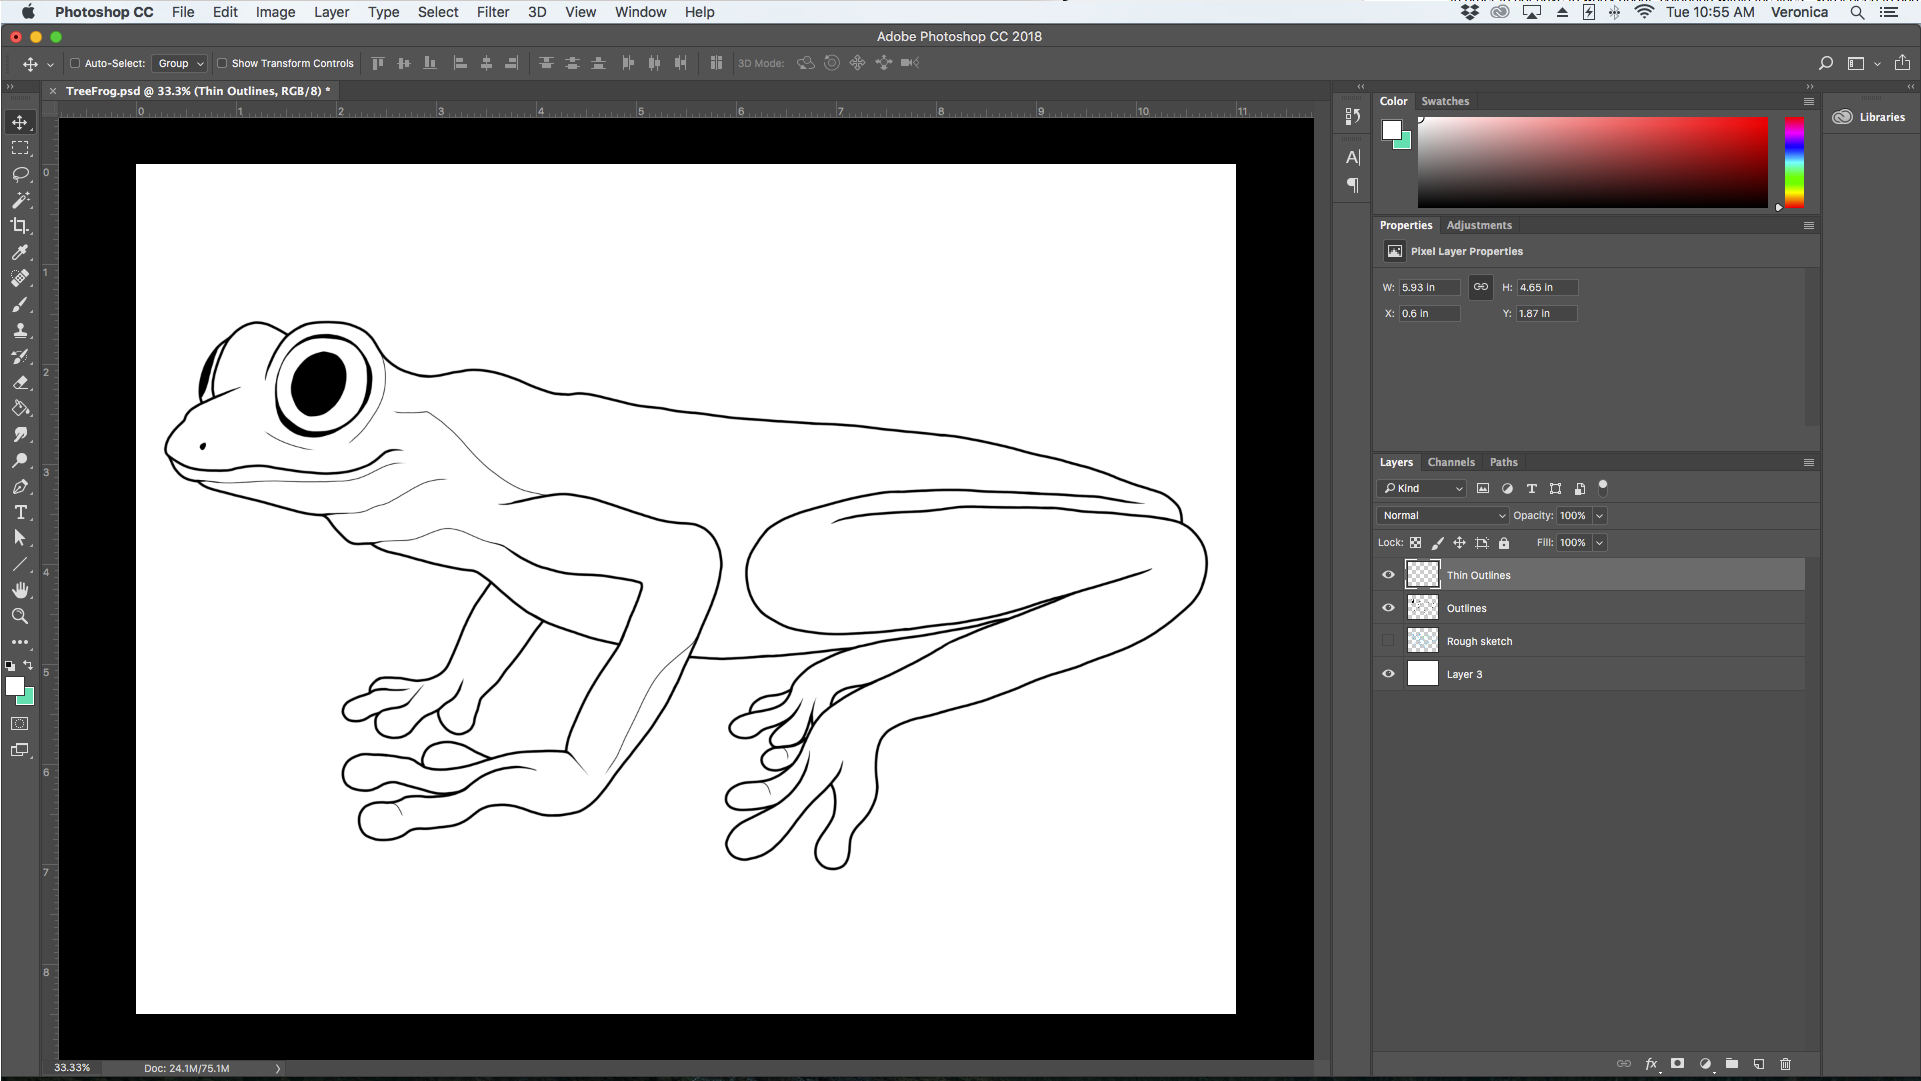 TreeFrog-Outlines-1